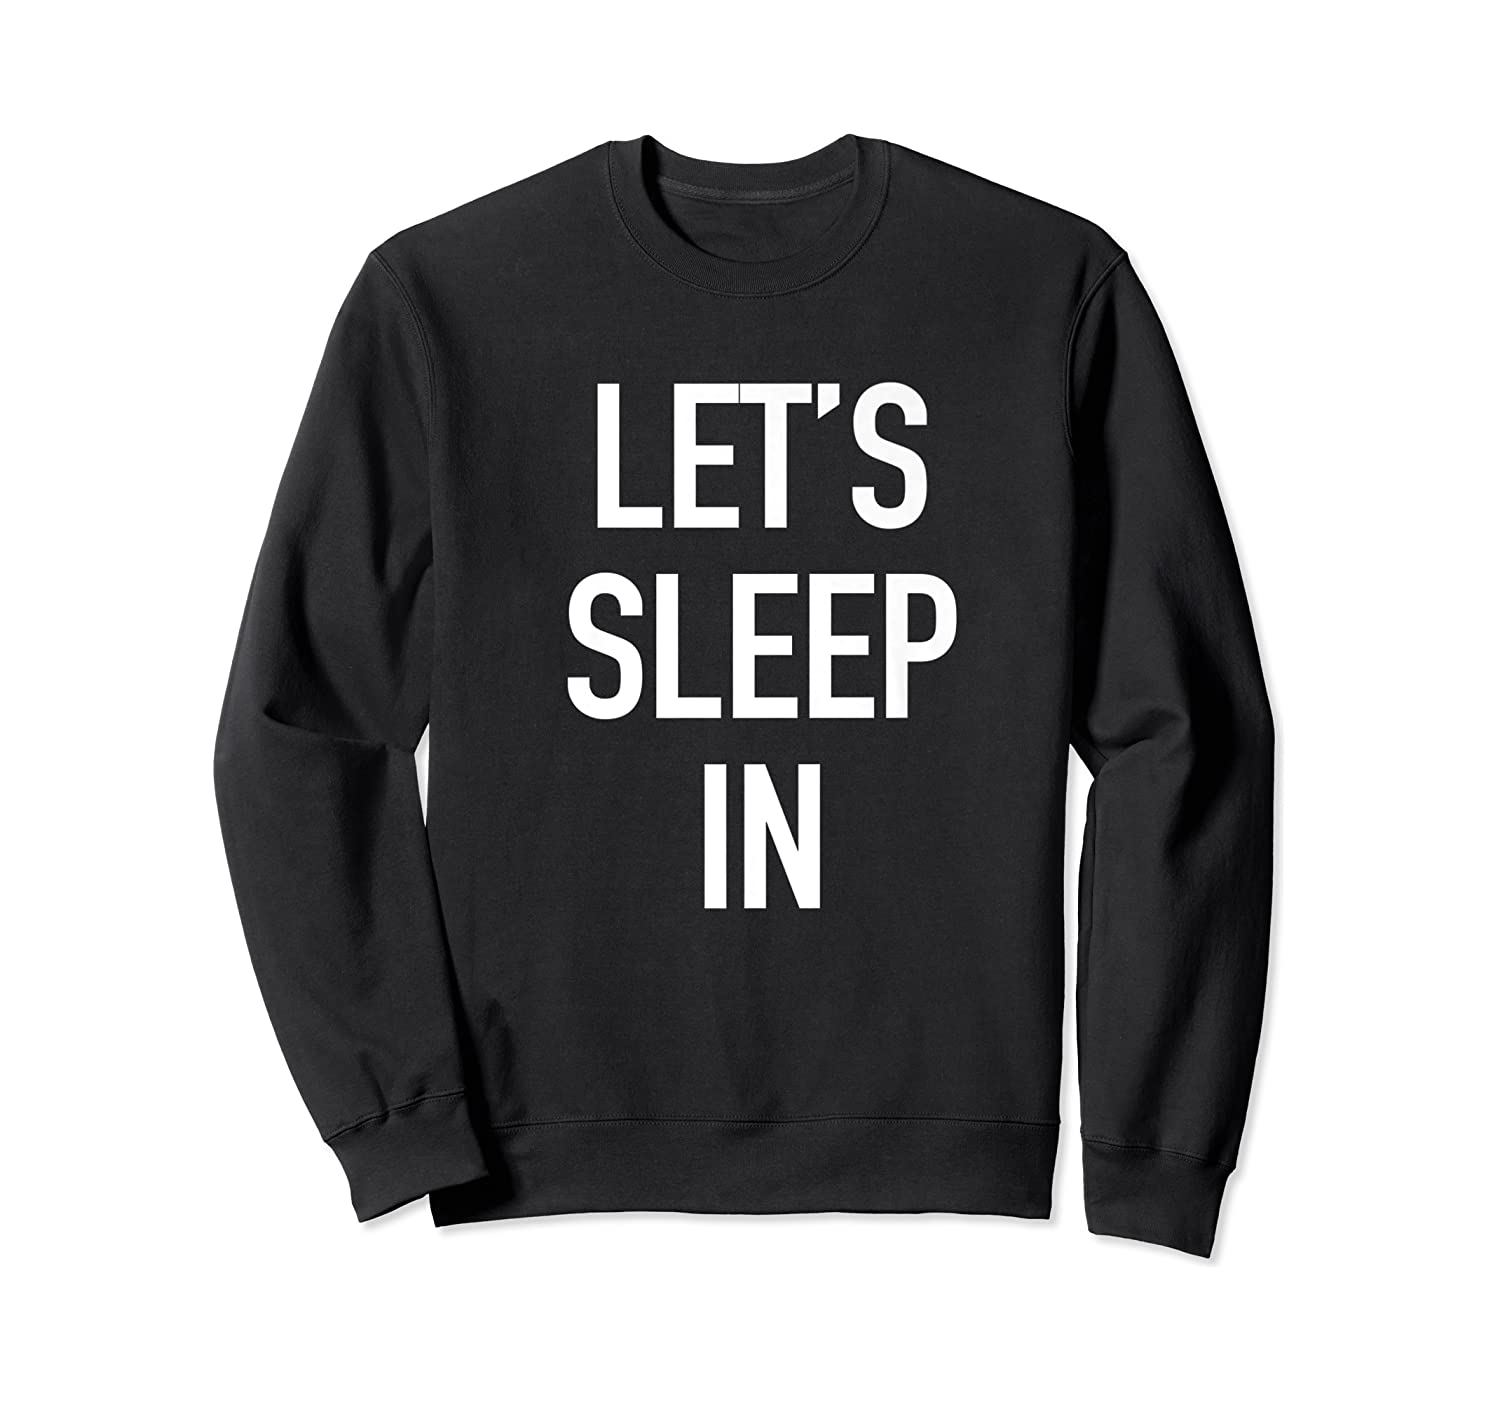 Lets Sleep In - Funny Lazy Day Pajama Quote T-shirt Crewneck Sweater